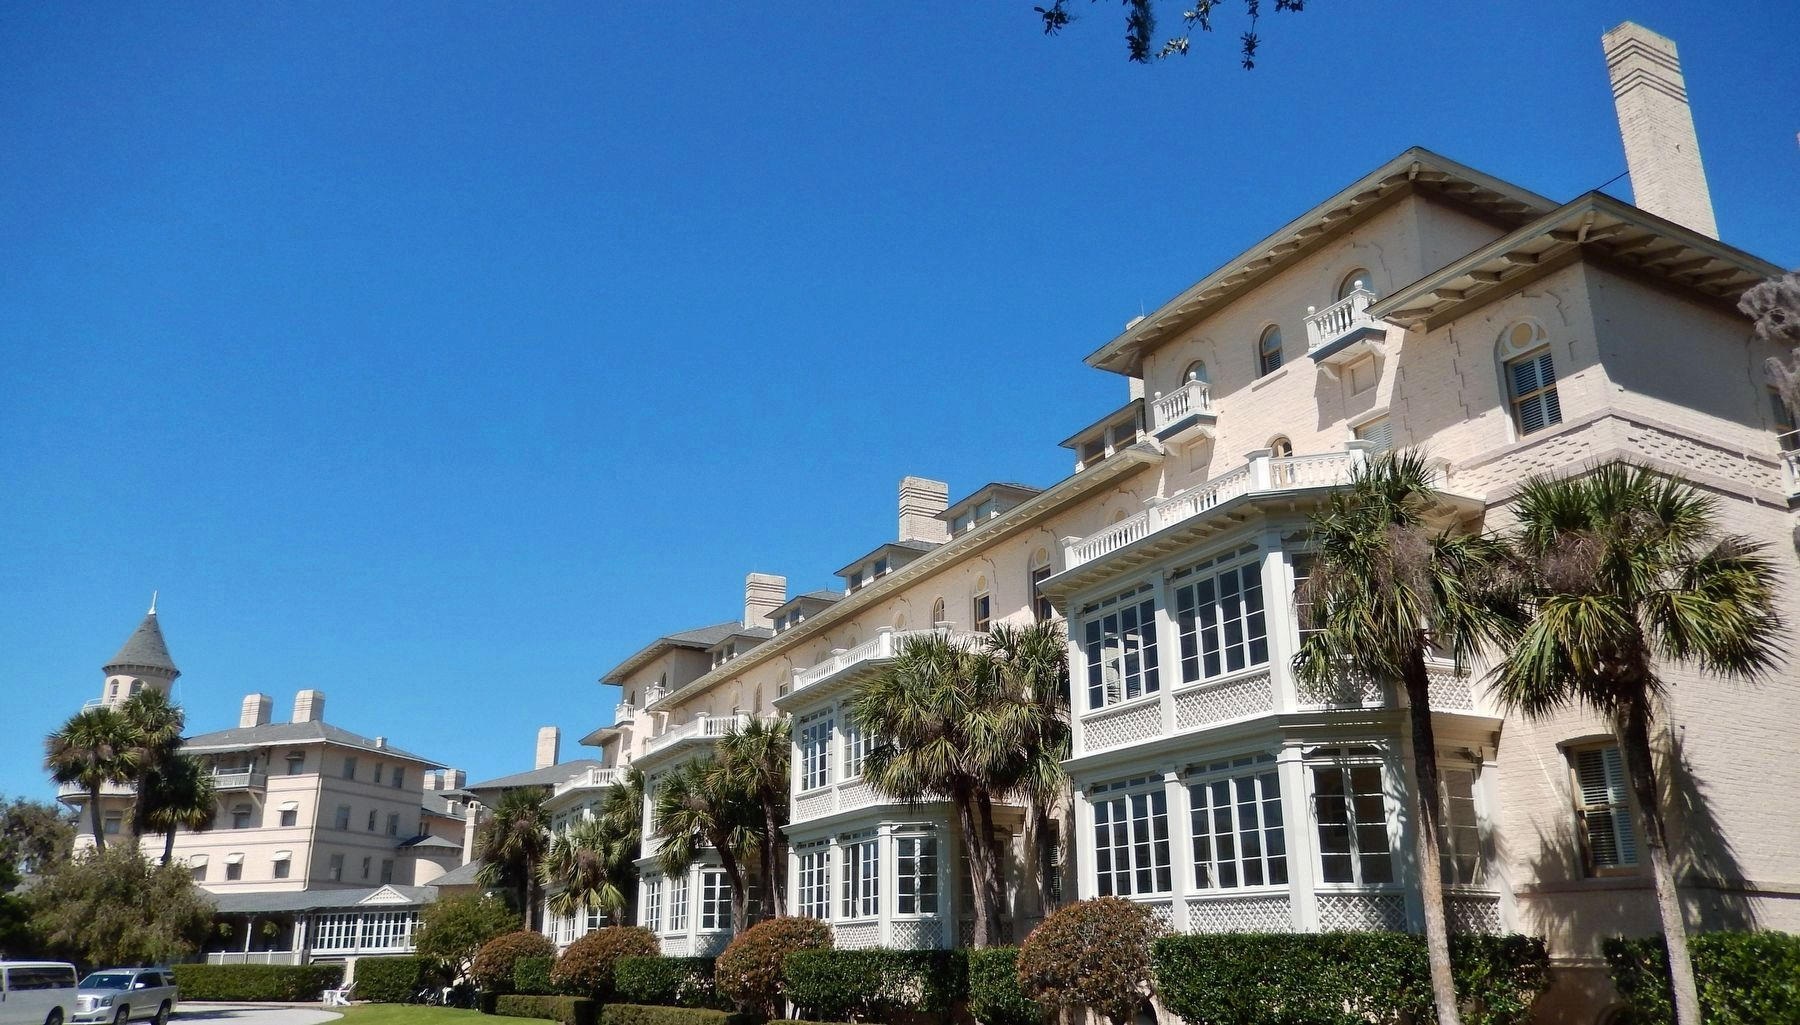 Jekyll Island Club (<i>wide view</i>) image. Click for full size.